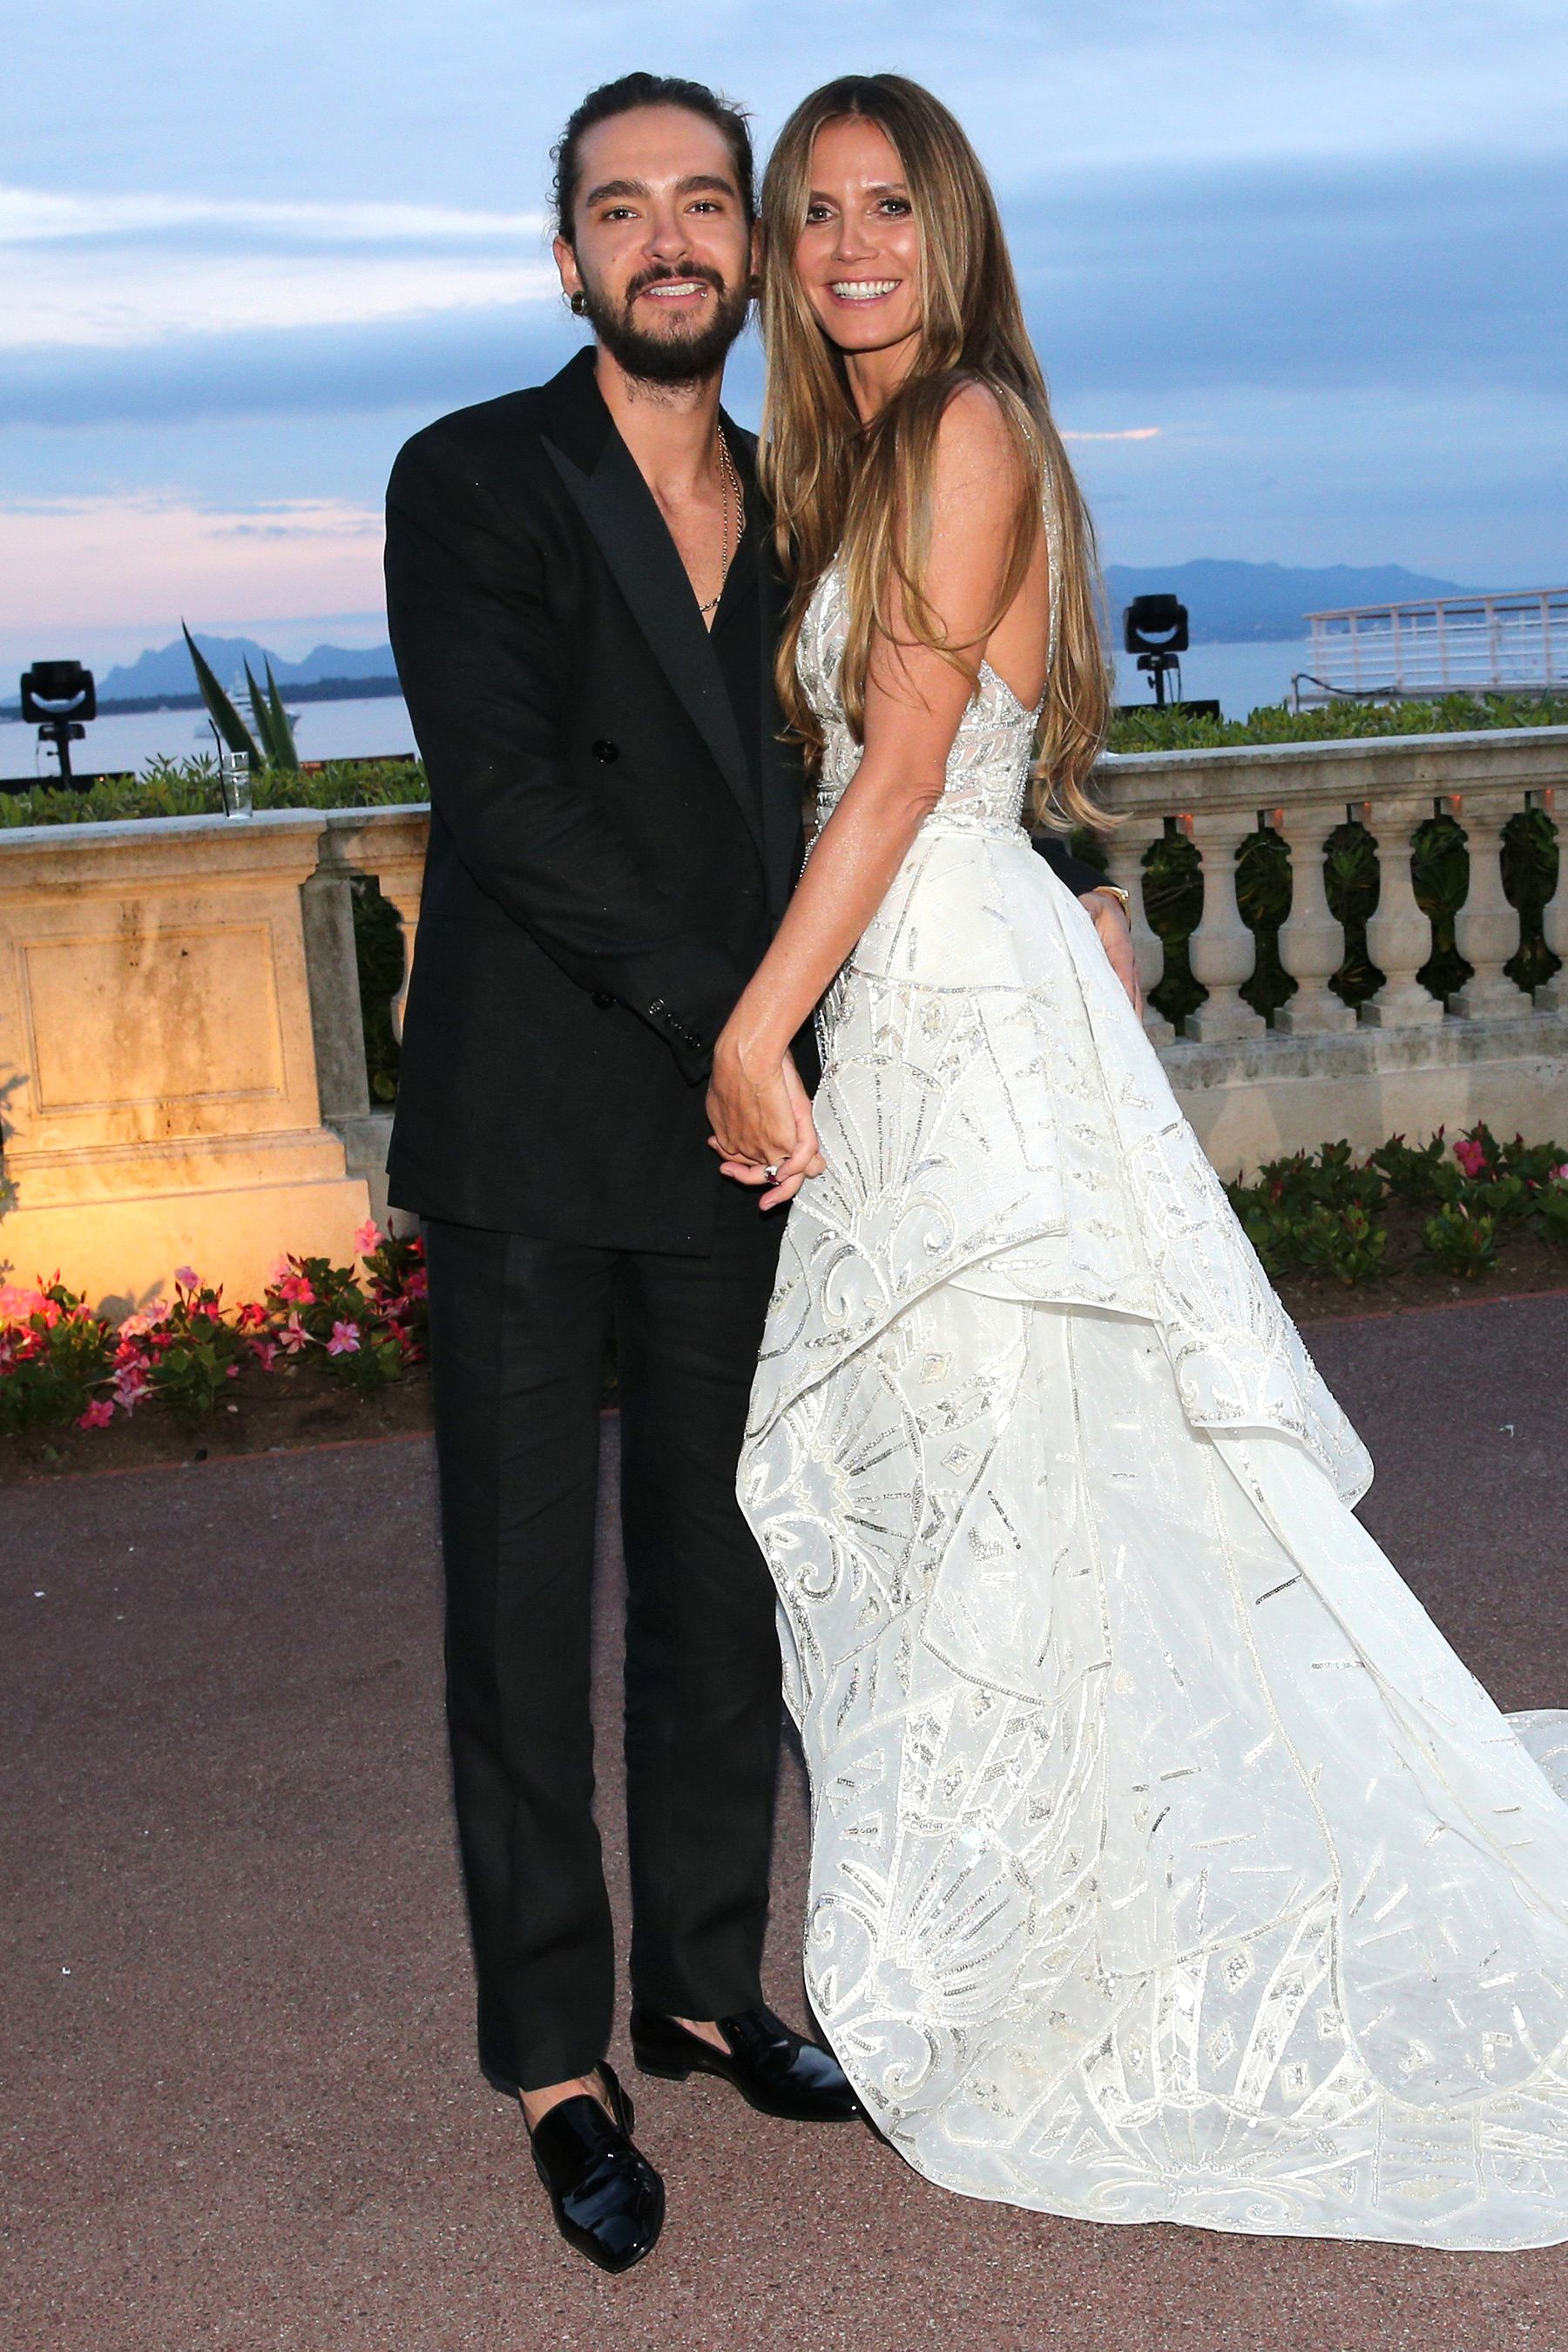 Heidi Klum is engaged to Tom Kaulitz after nearly a year of dating